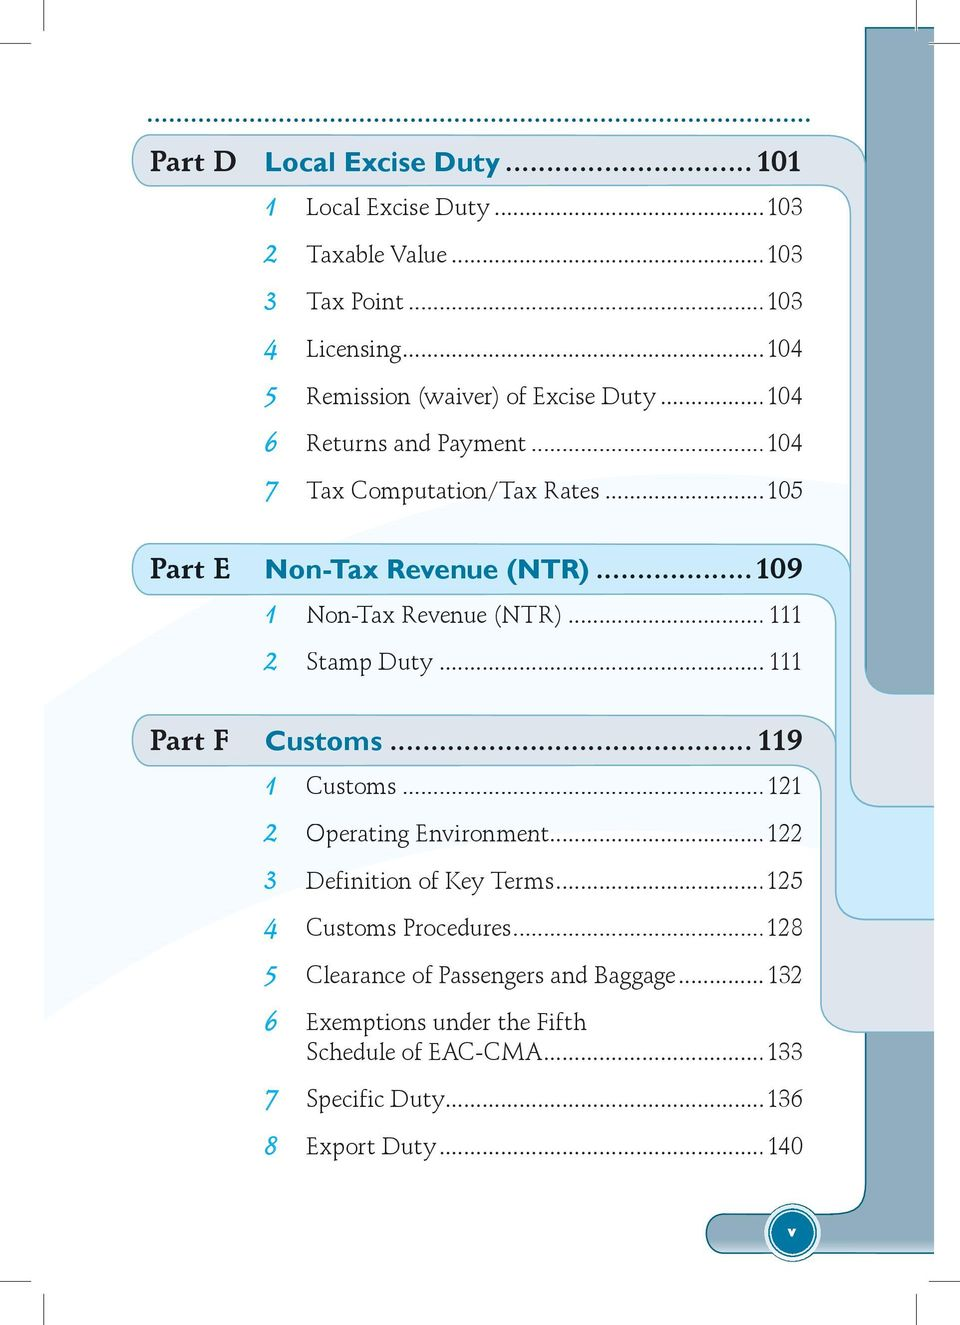 ..109 1 Non-Tax Revenue (NTR)... 111 2 Stamp Duty... 111 Part F Customs... 119 1 Customs...121 2 Operating Environment.